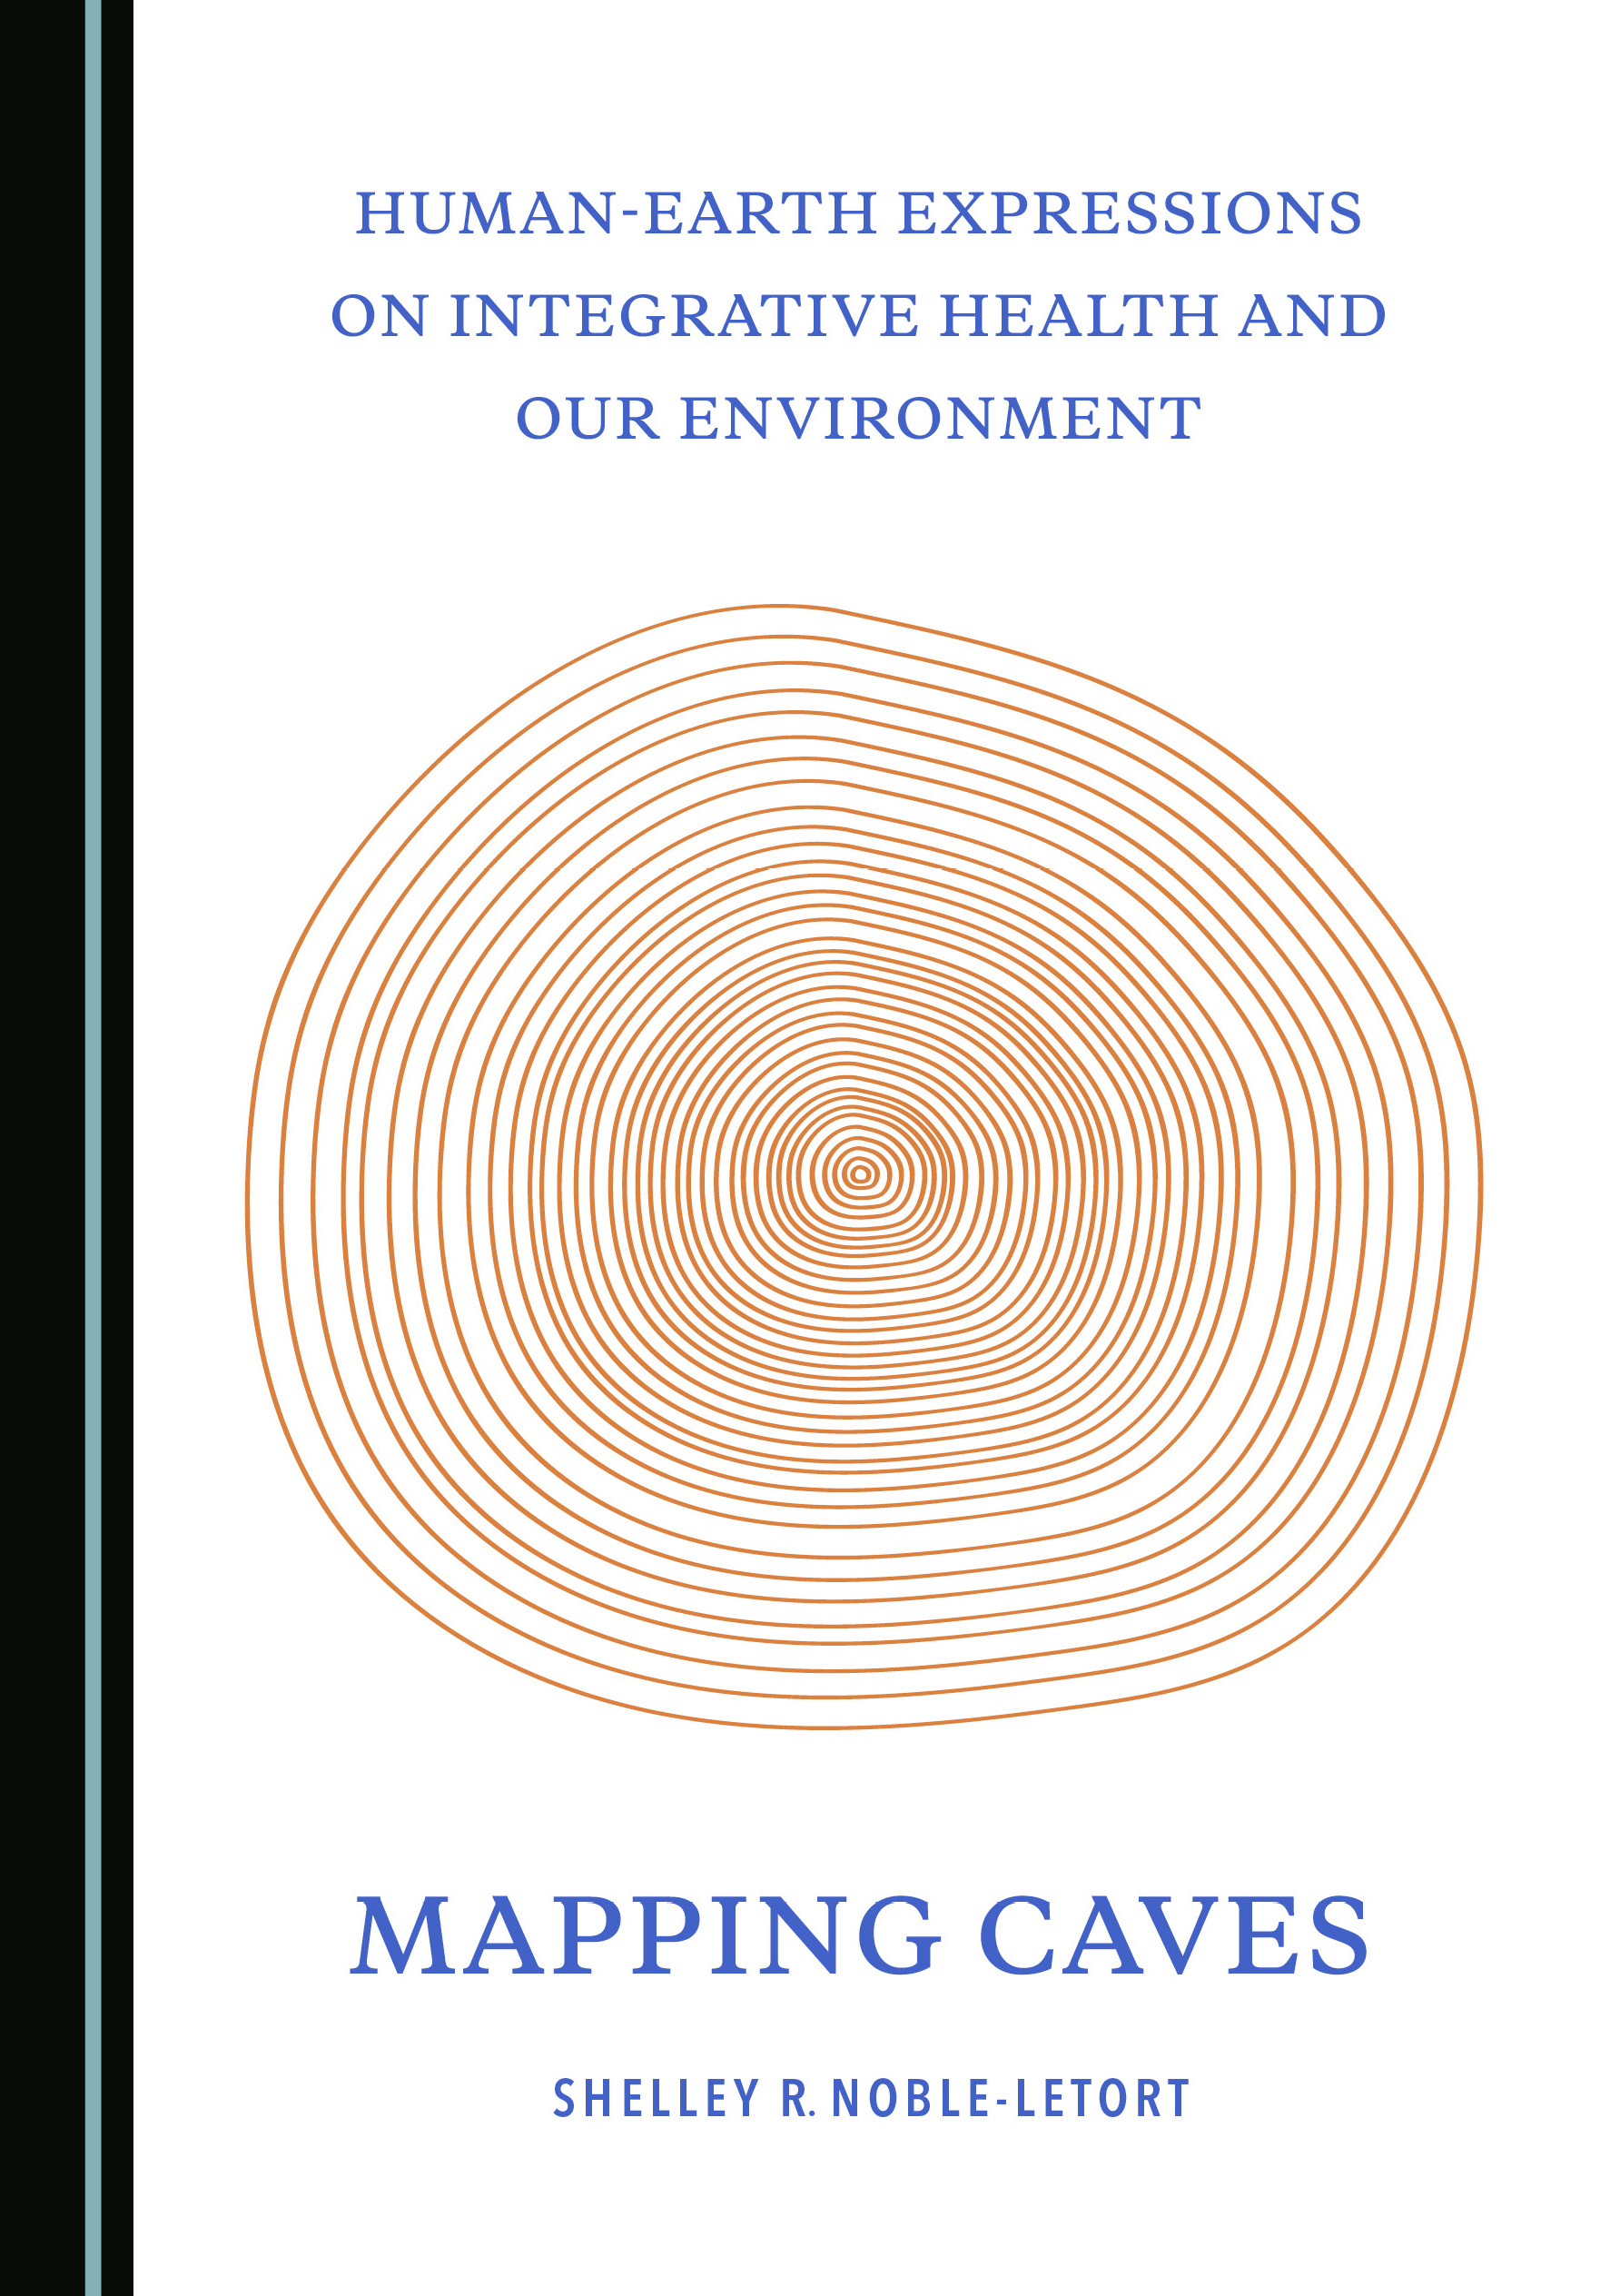 Human-Earth Expressions on Integrative Health and Our Environment: Mapping Caves